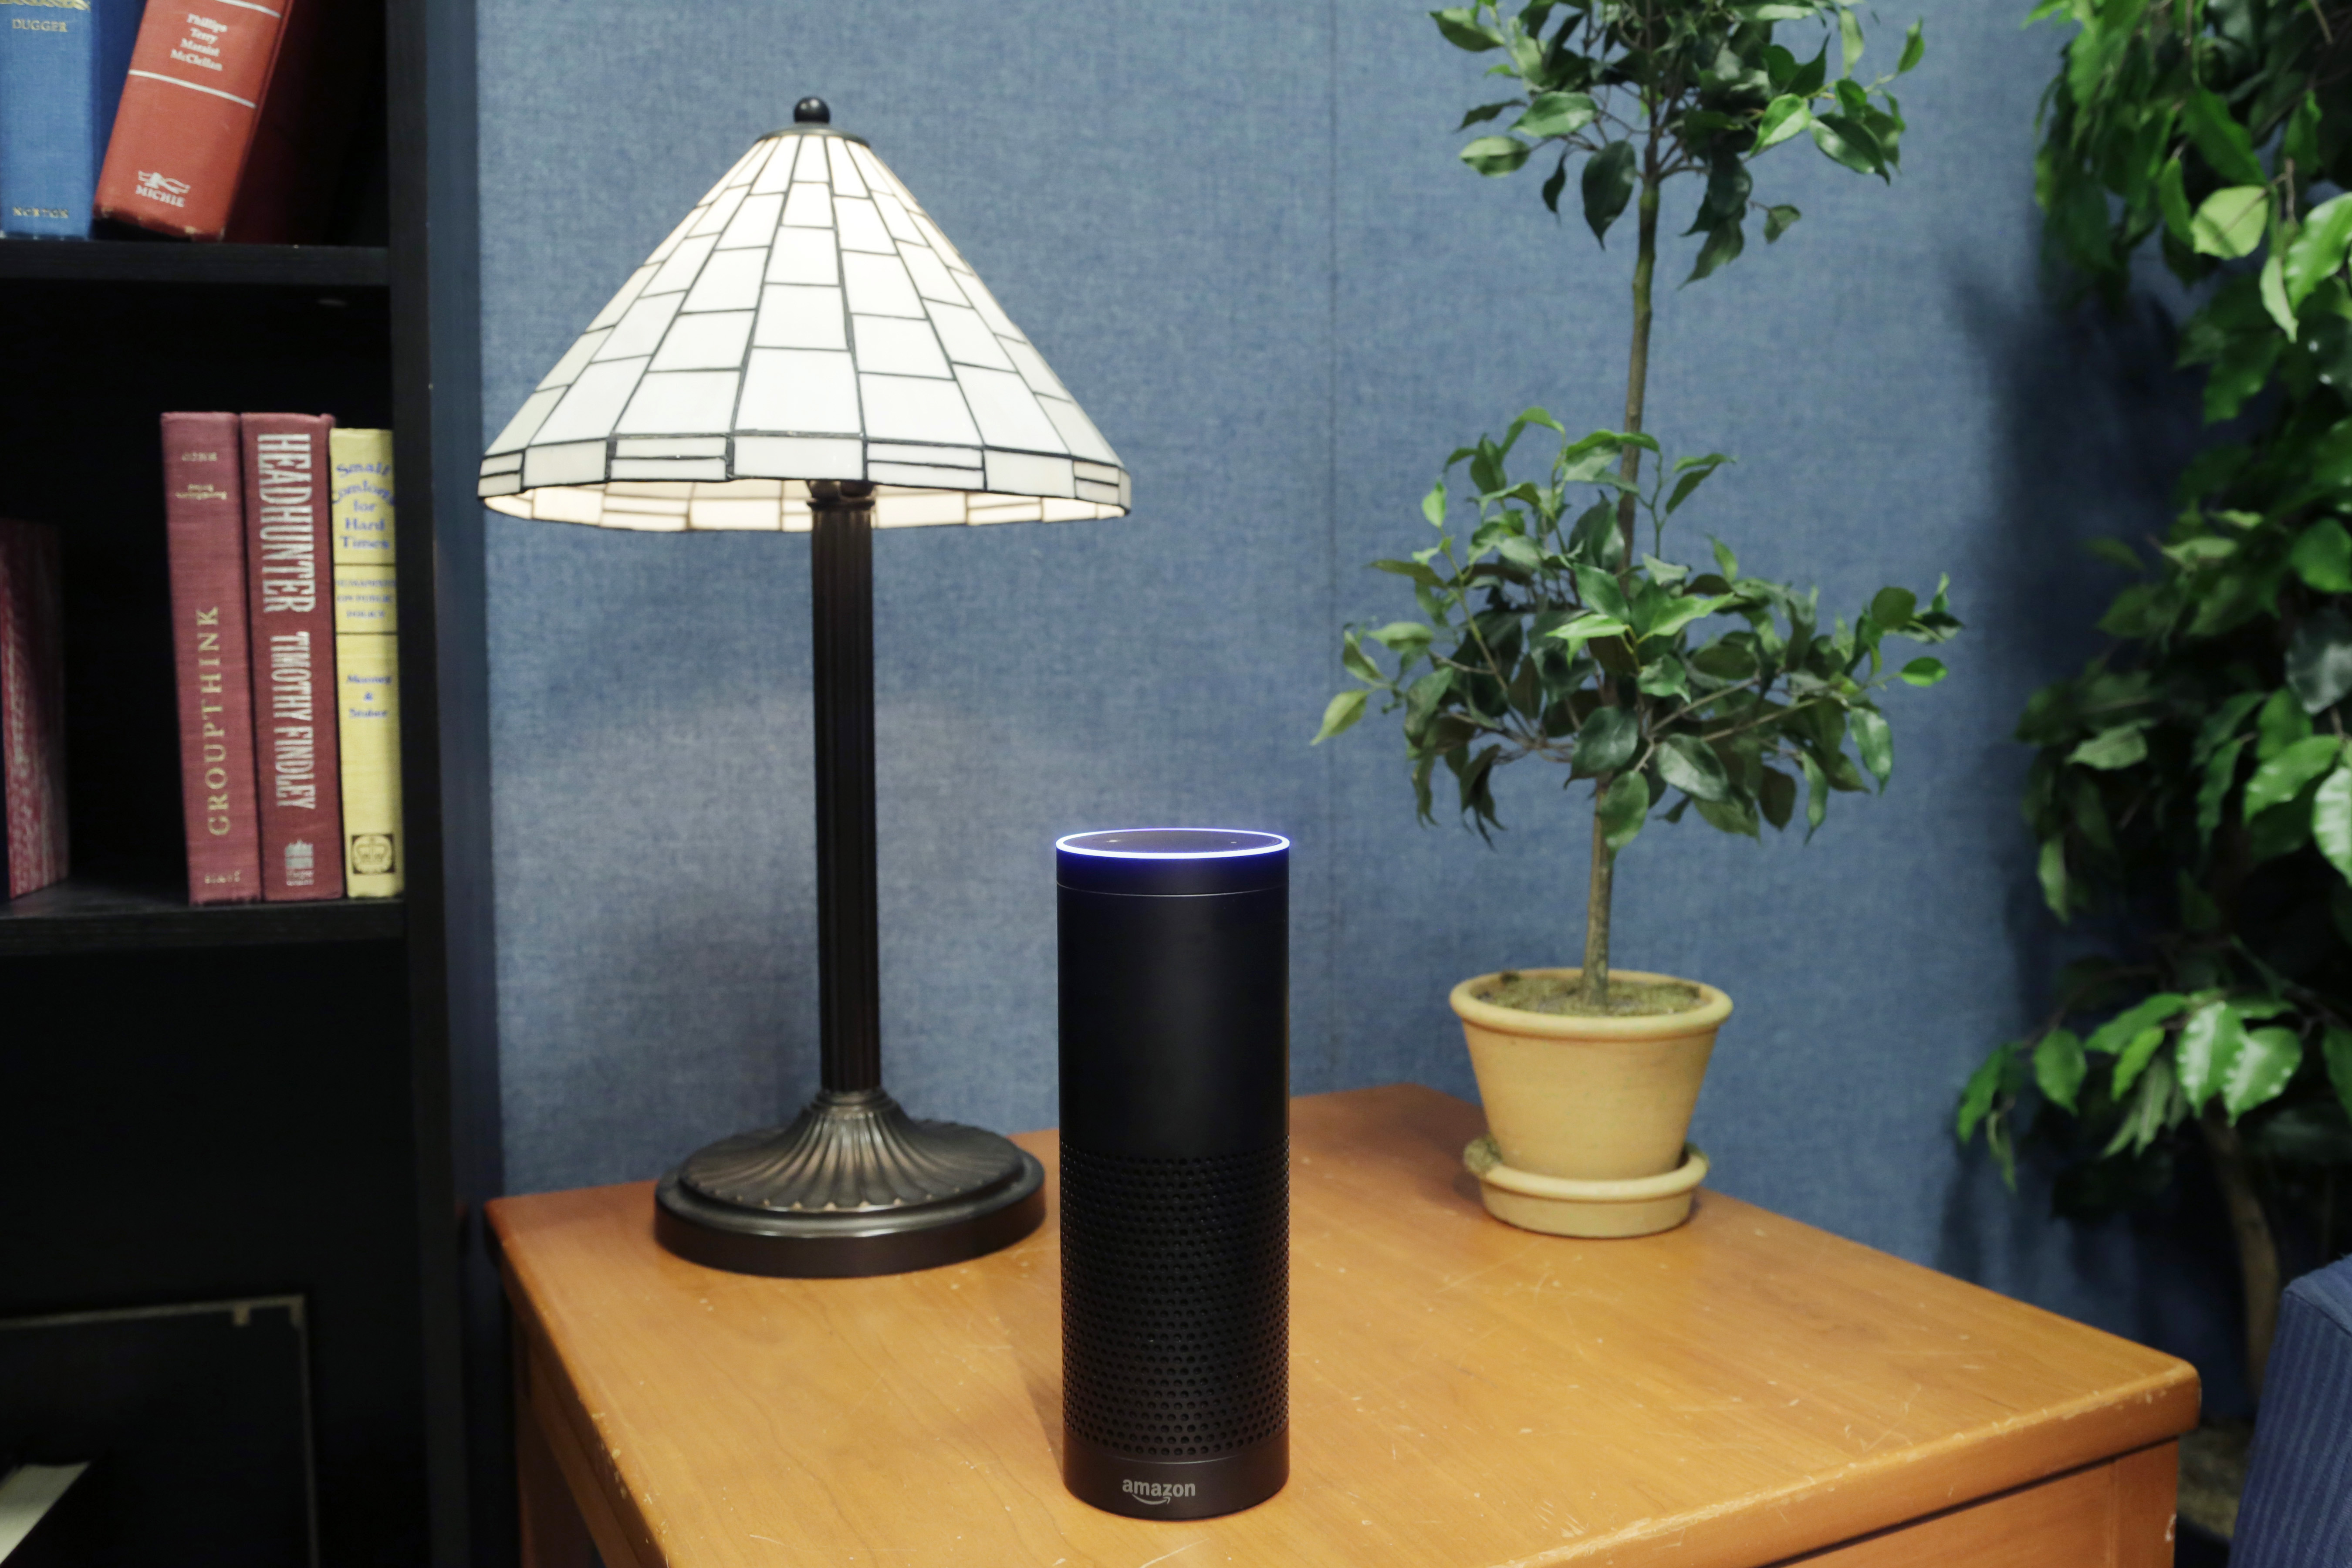 Amazon Echo technology